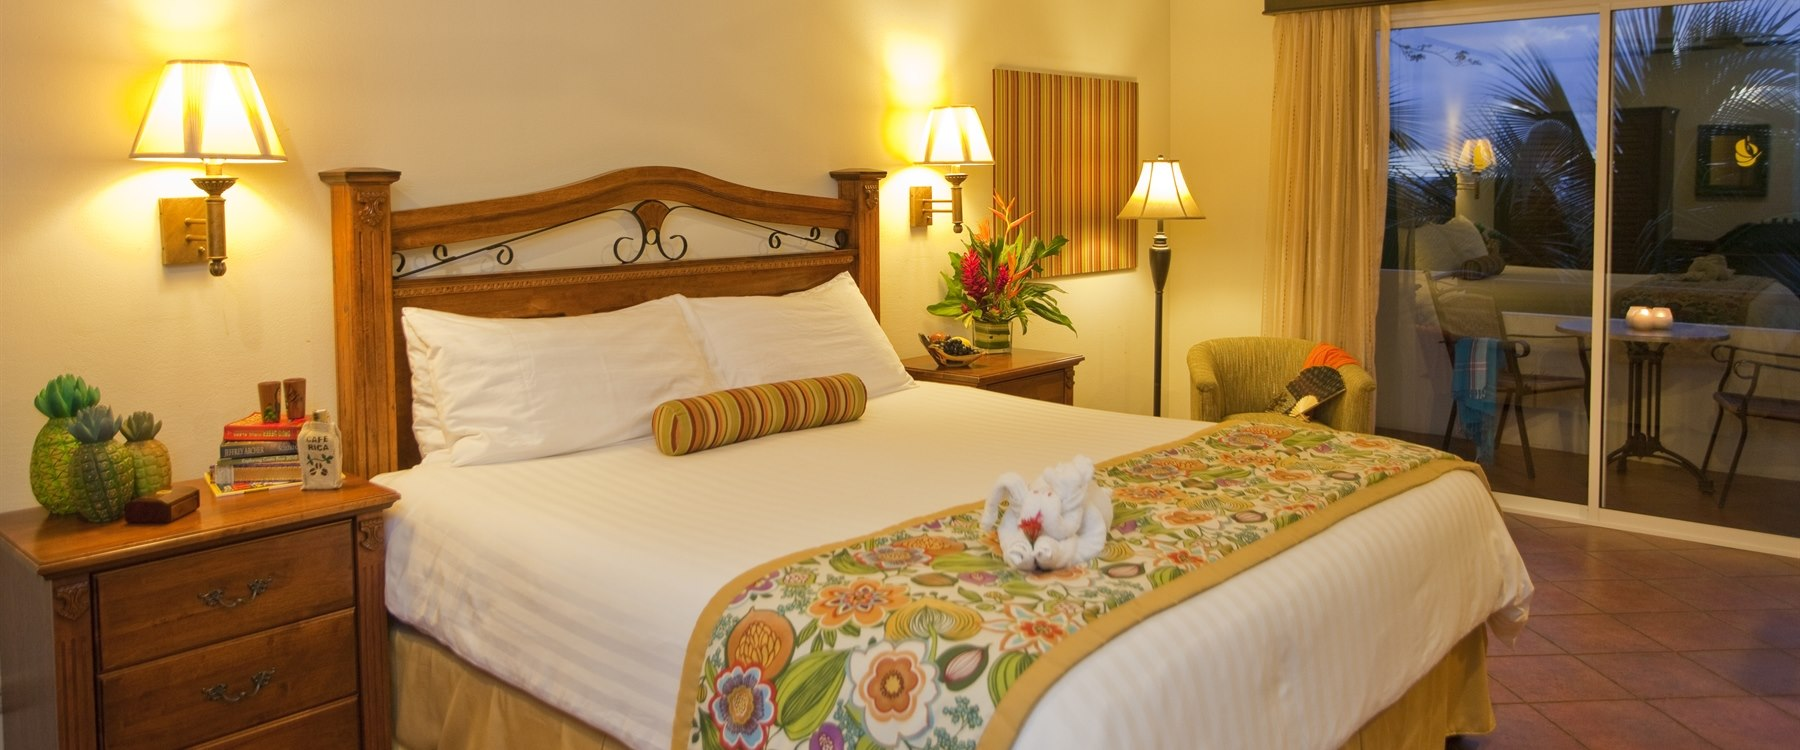 Guest bedroom at Parador Resort & Spa